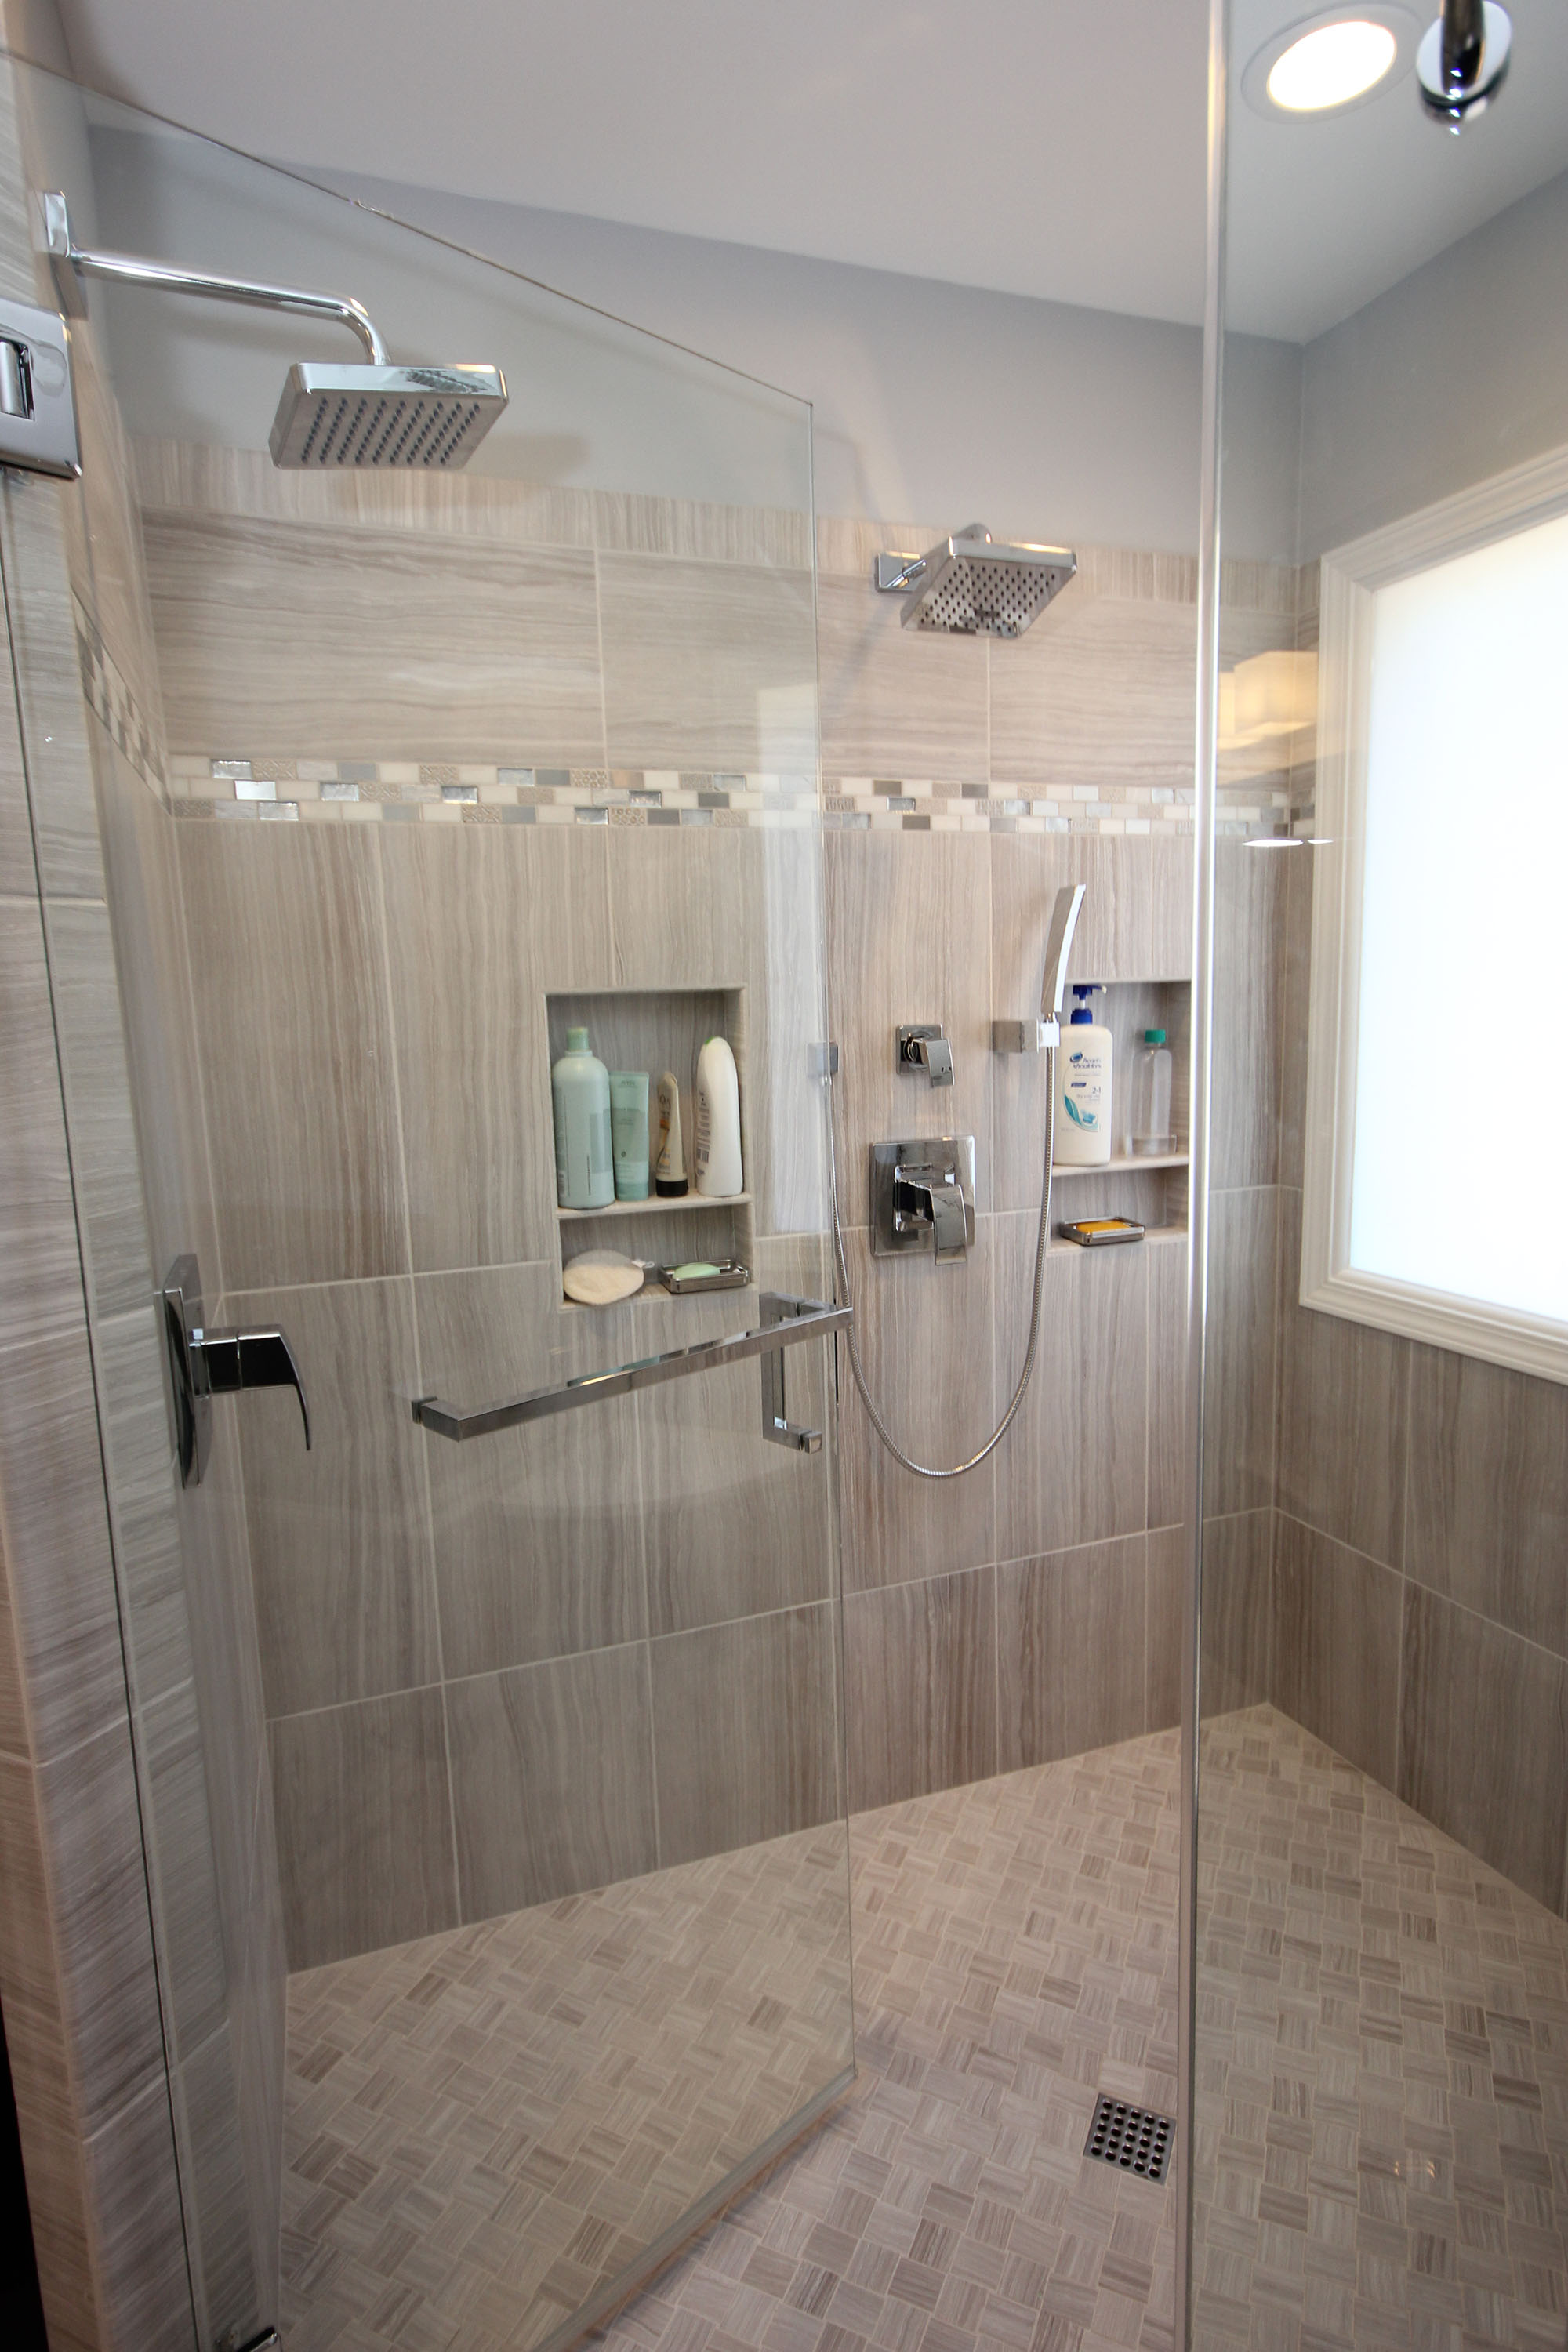 Shower Remodel Raleigh Professionals. View Image